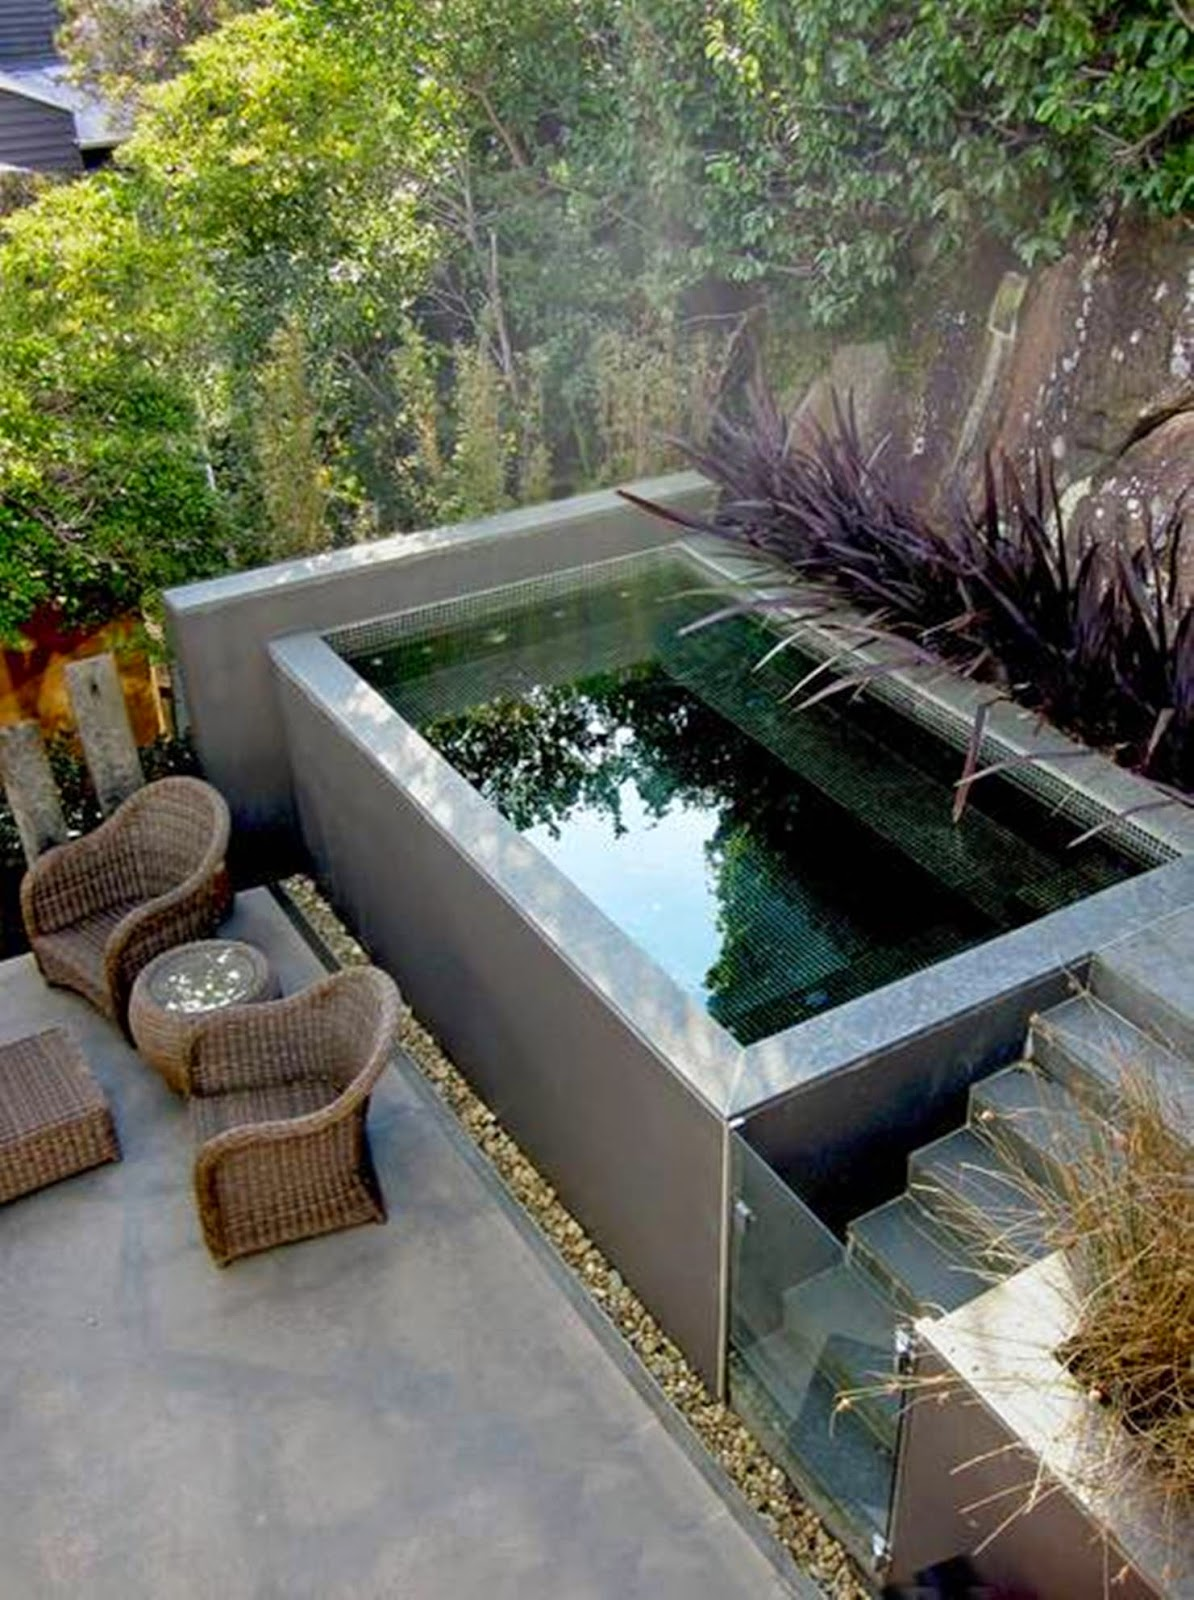 Natural Pool Designs For Small Backyards : blog de decora??o  Arquitrecos Quintais pequenos Lazer para todas